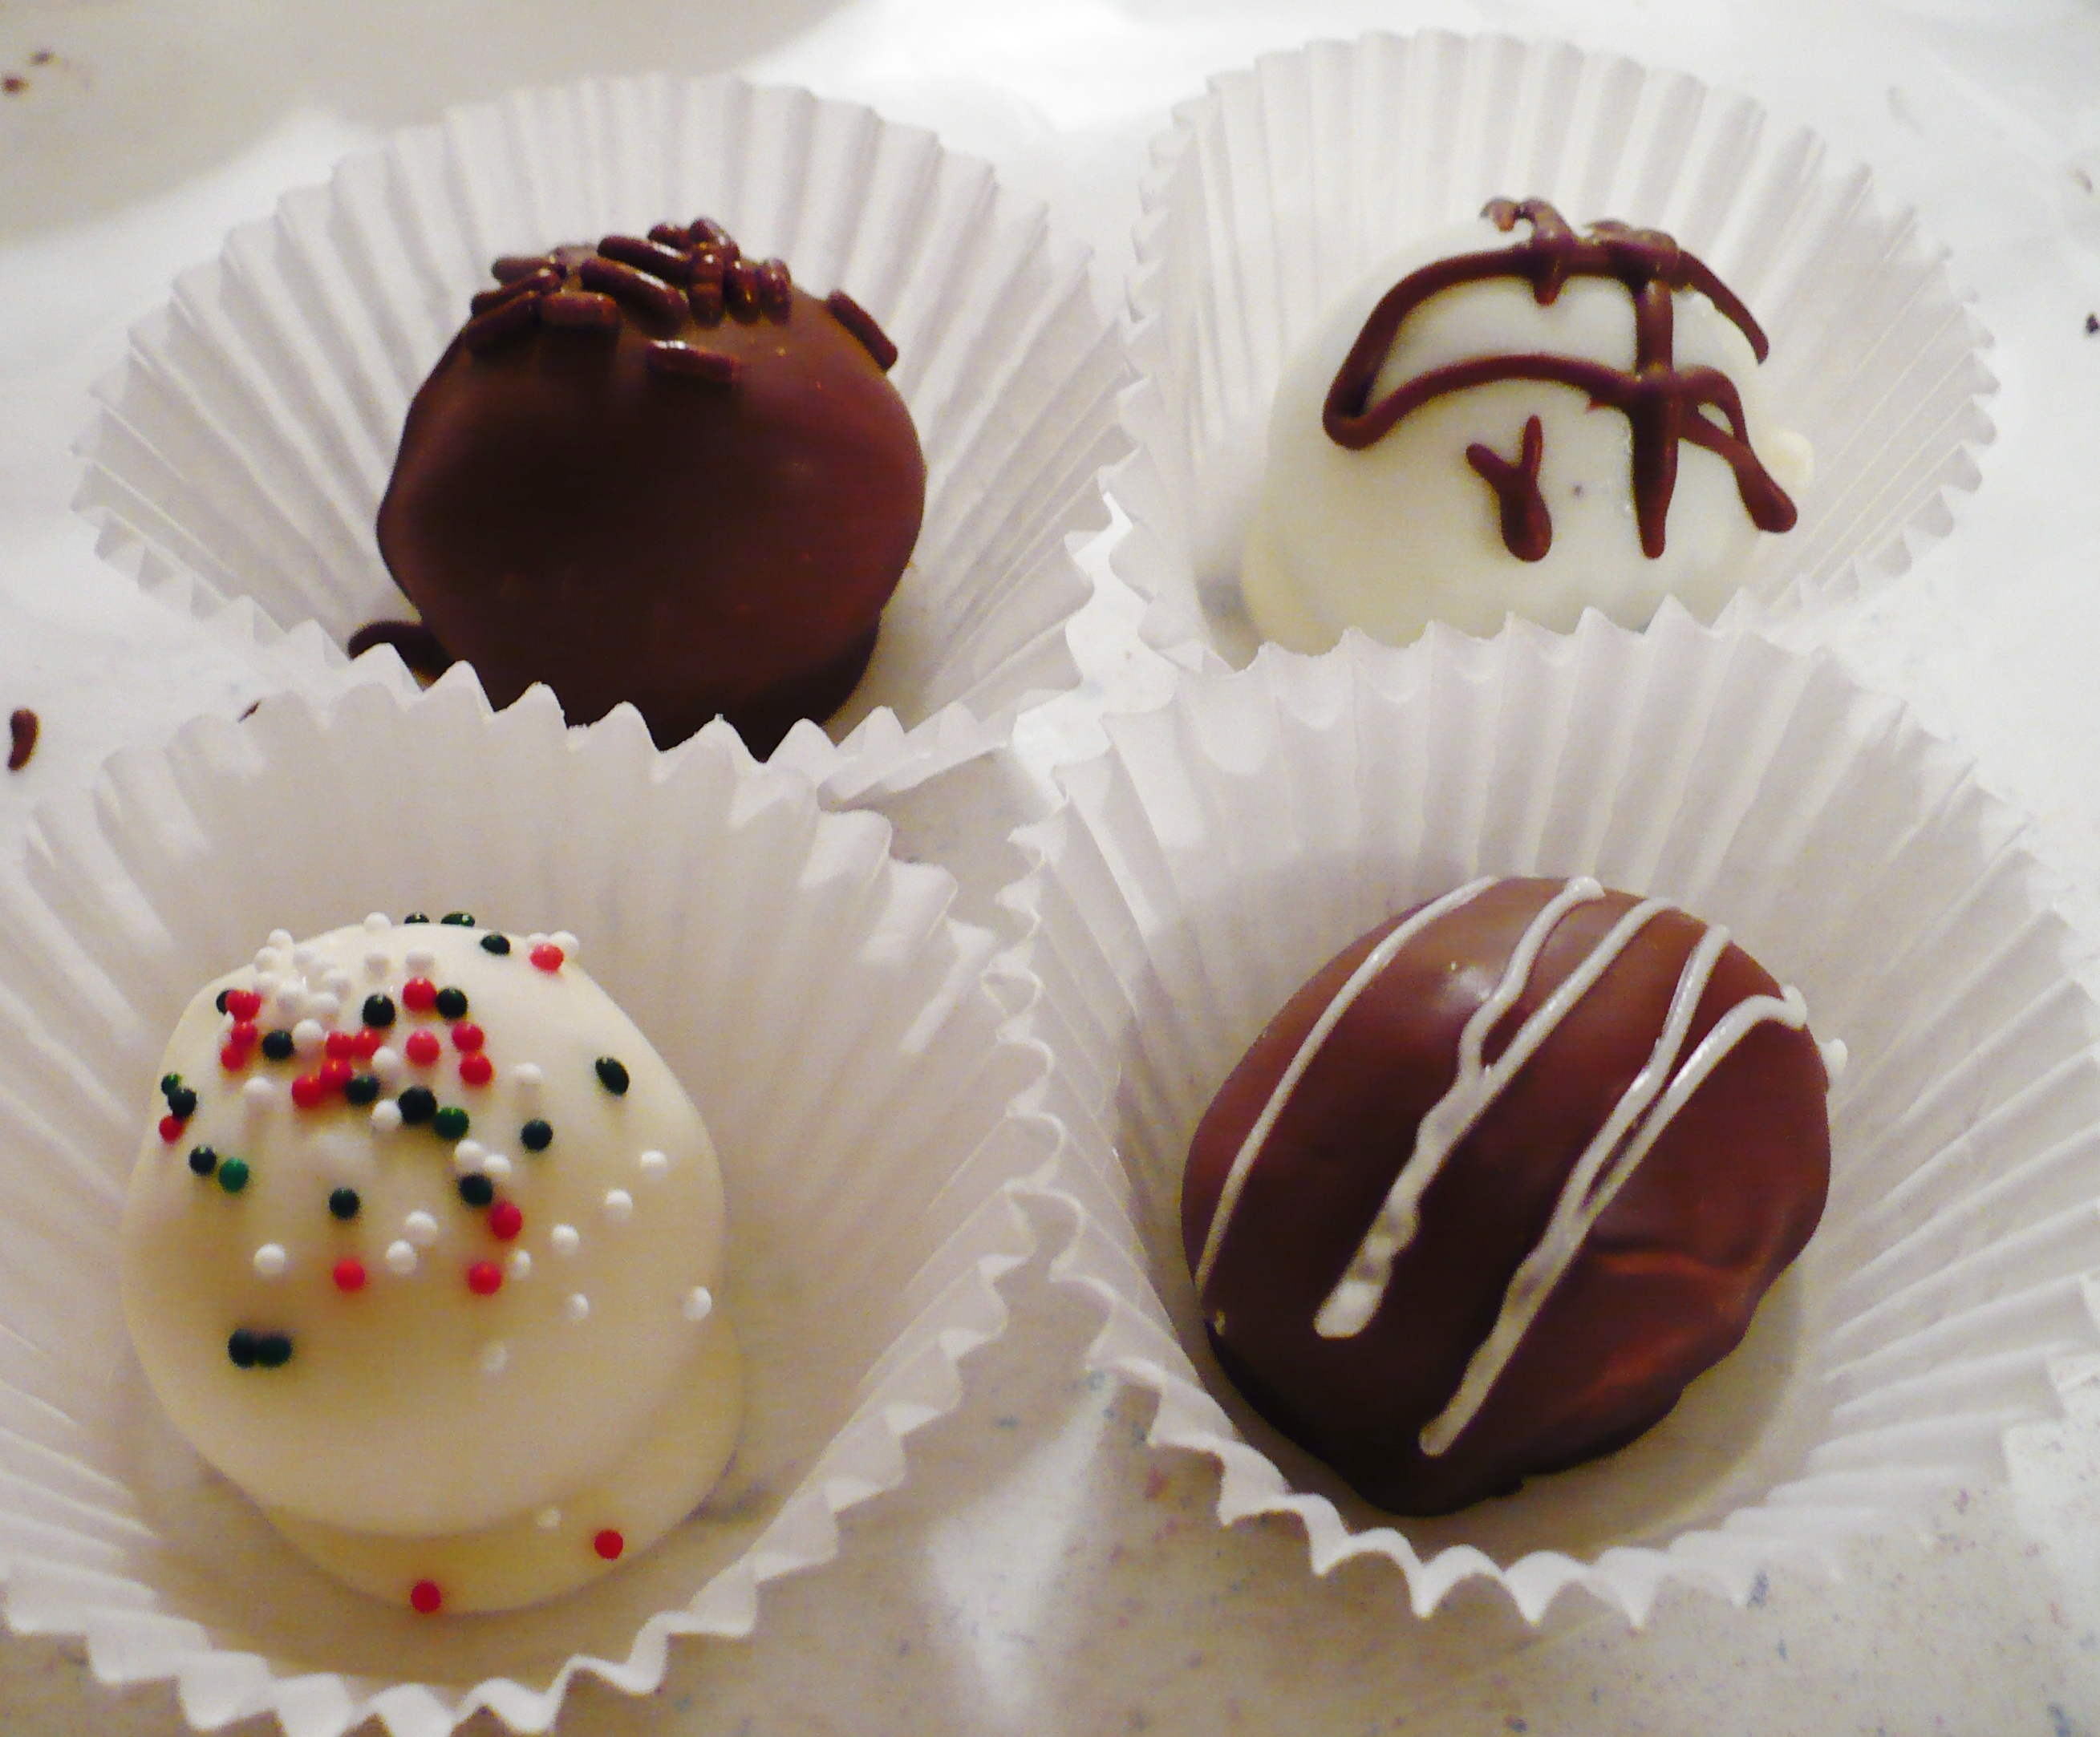 20 things I learned today while making chocolate cookie truffles